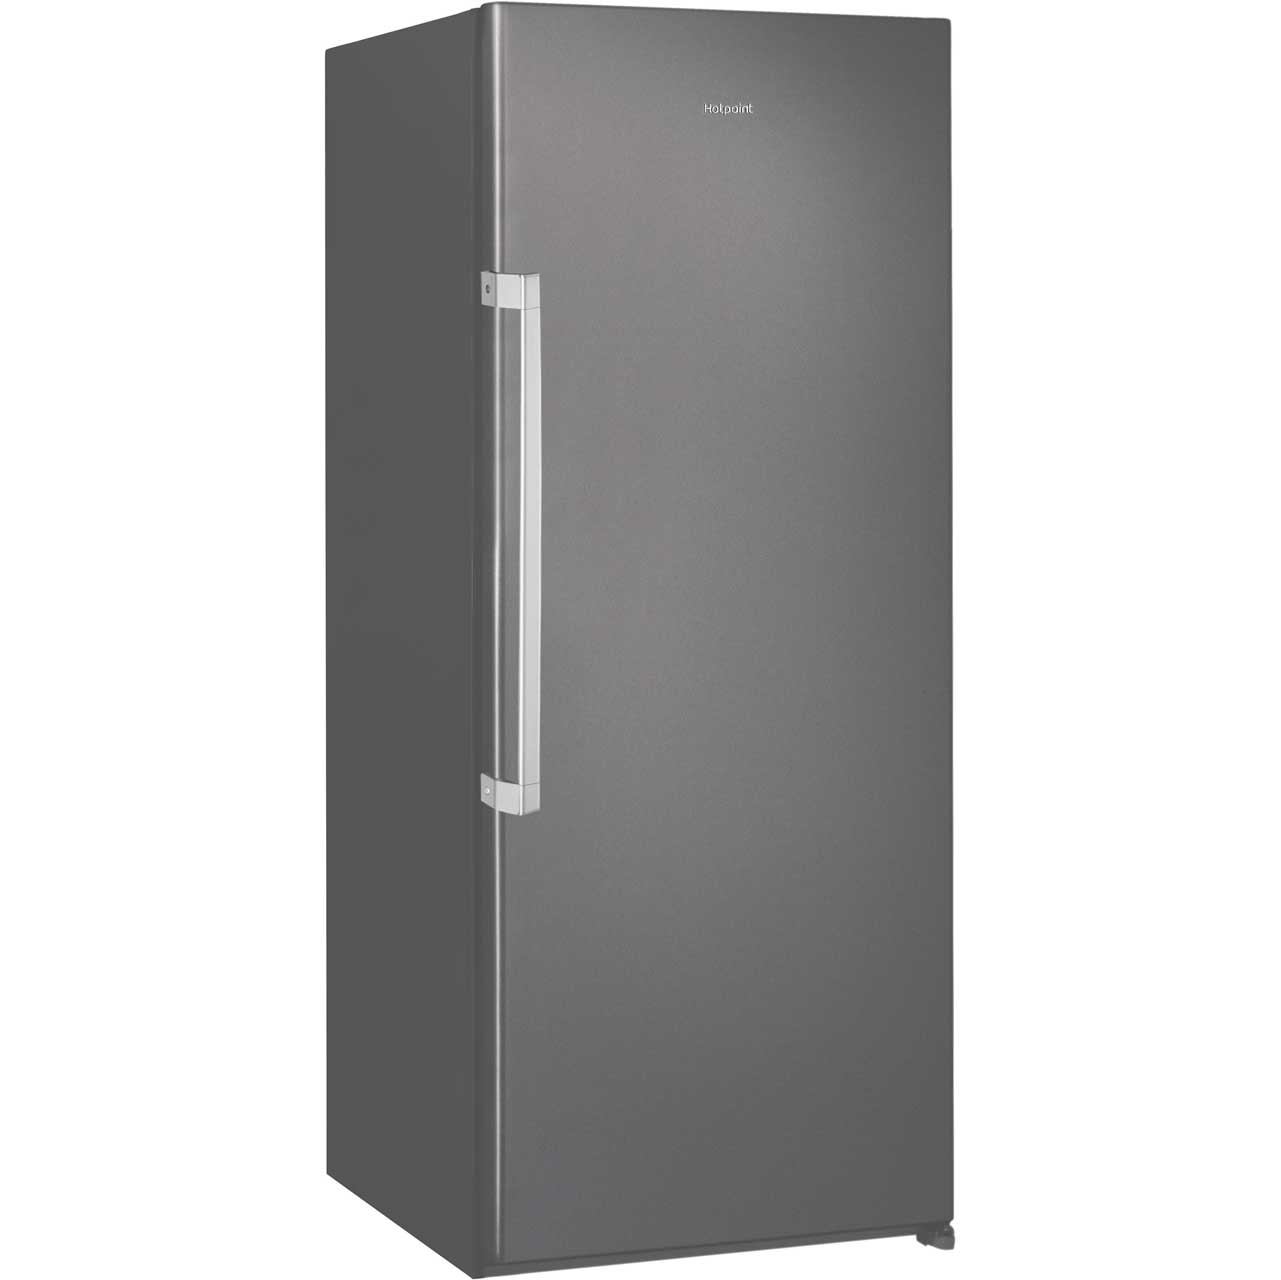 Hotpoint SH6A1QGRD Fridge - Graphite